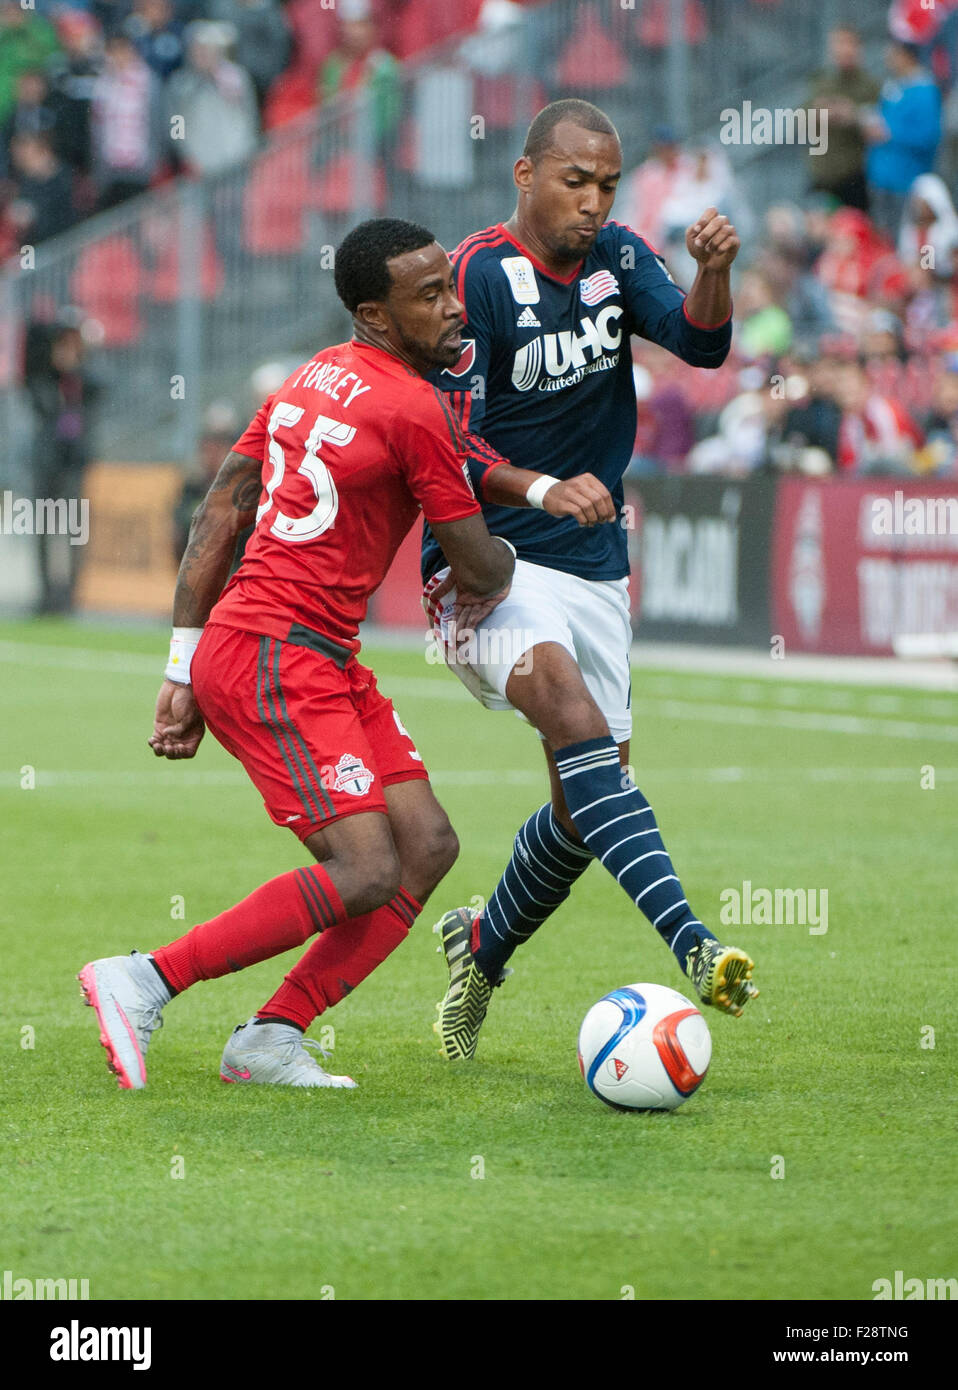 Toronto, Ontario, Canada. 13th September, 2015. Toronto FC forward Robbie Findley (55) tackles New England Revolution - Stock Image